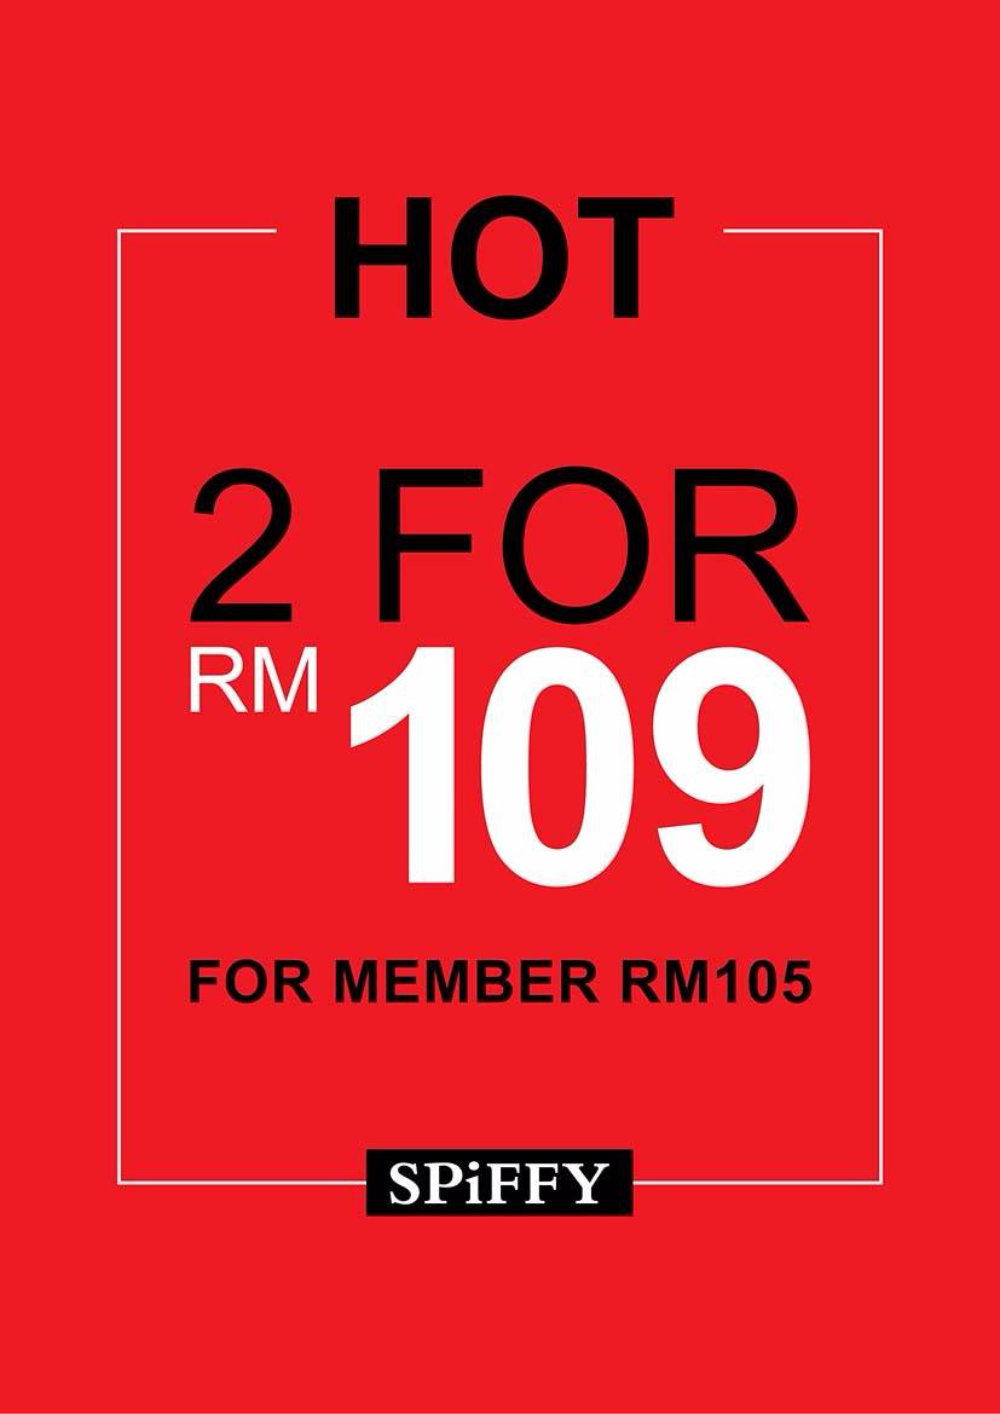 Spiffy Shoes Sales Malaysia for With You Club Members 2 pairs of shoes RM109 only Spiffy Shoes A01